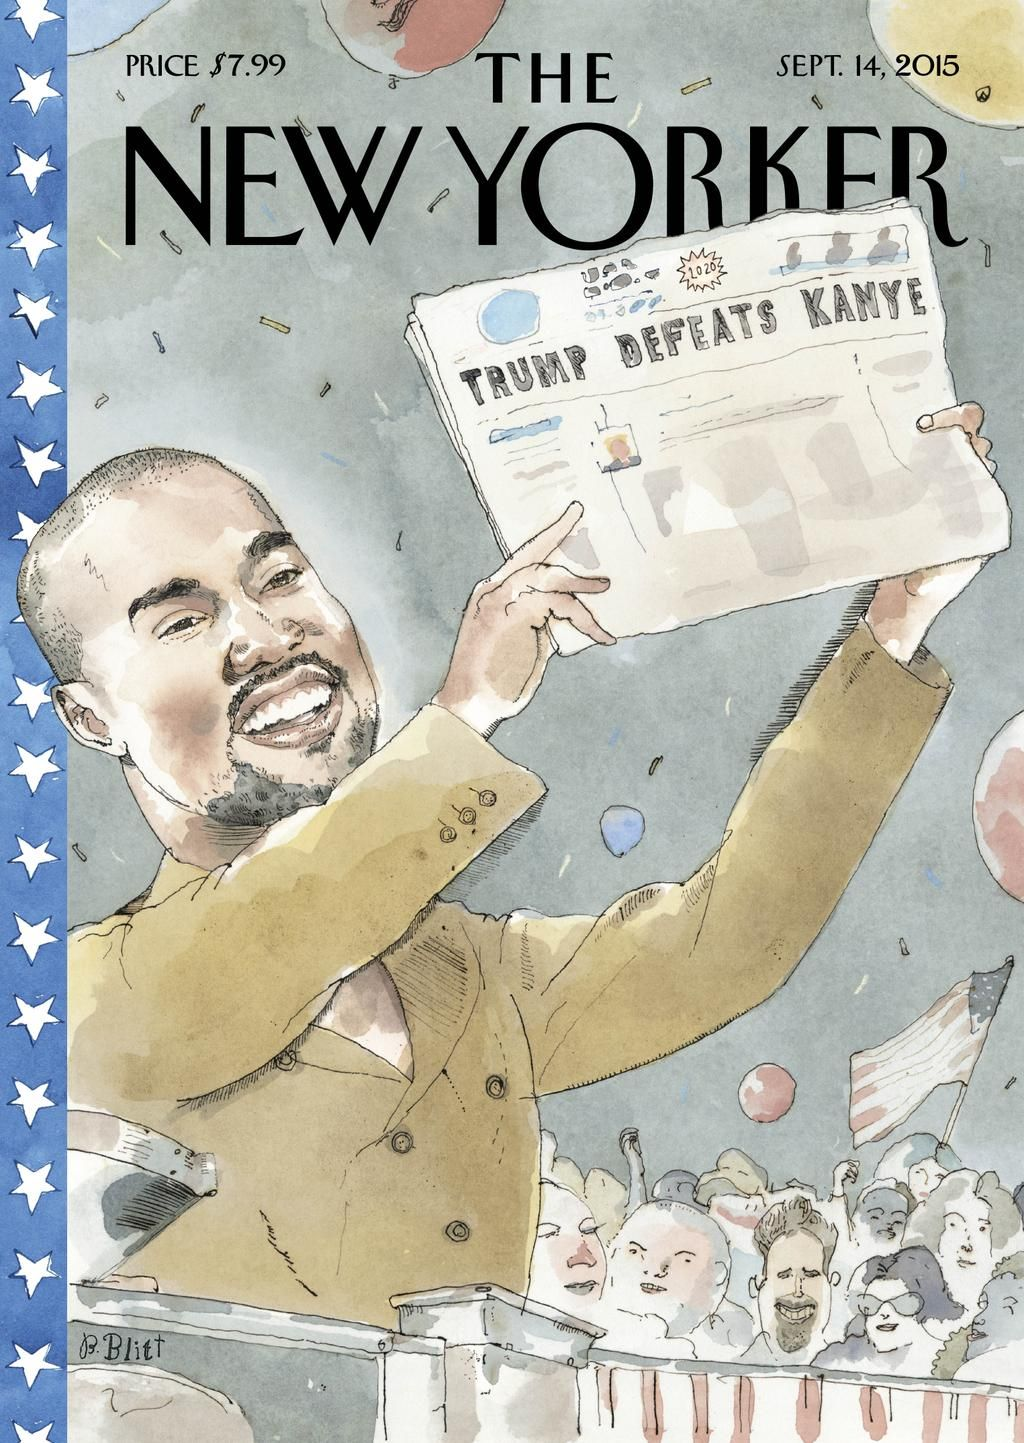 """An early look at next week's cover, """"2020 Vision,"""" by Barry Blitt: http://nyr.kr/1O1WS09"""